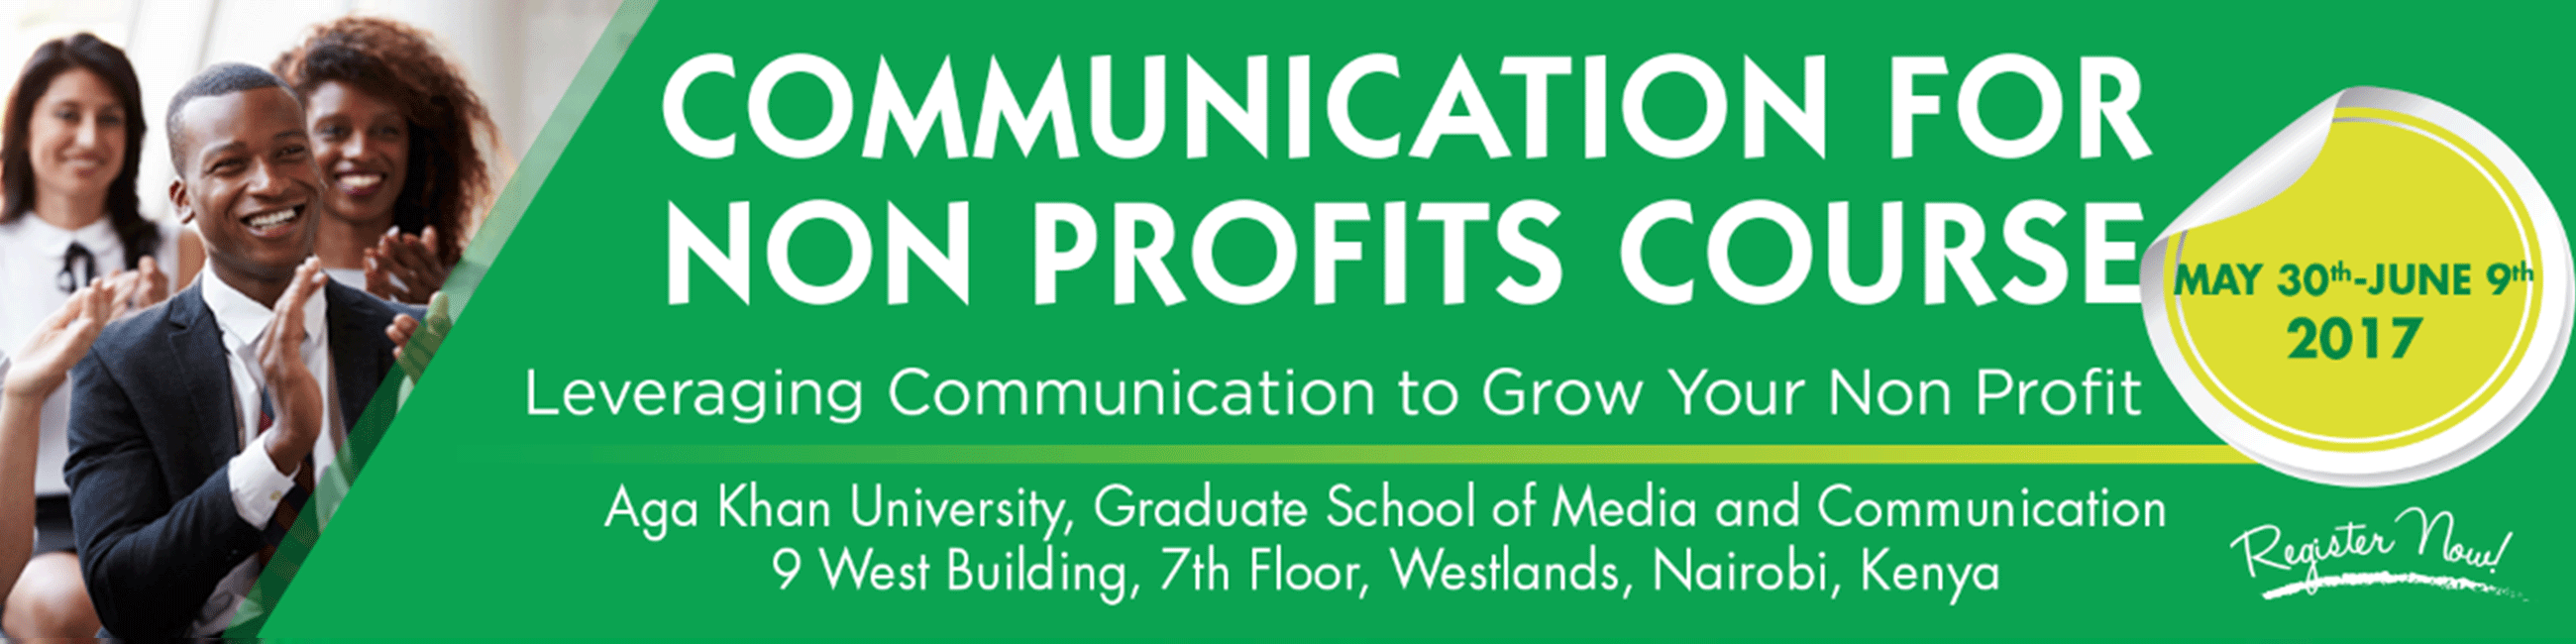 Communication-for-Non-Profits